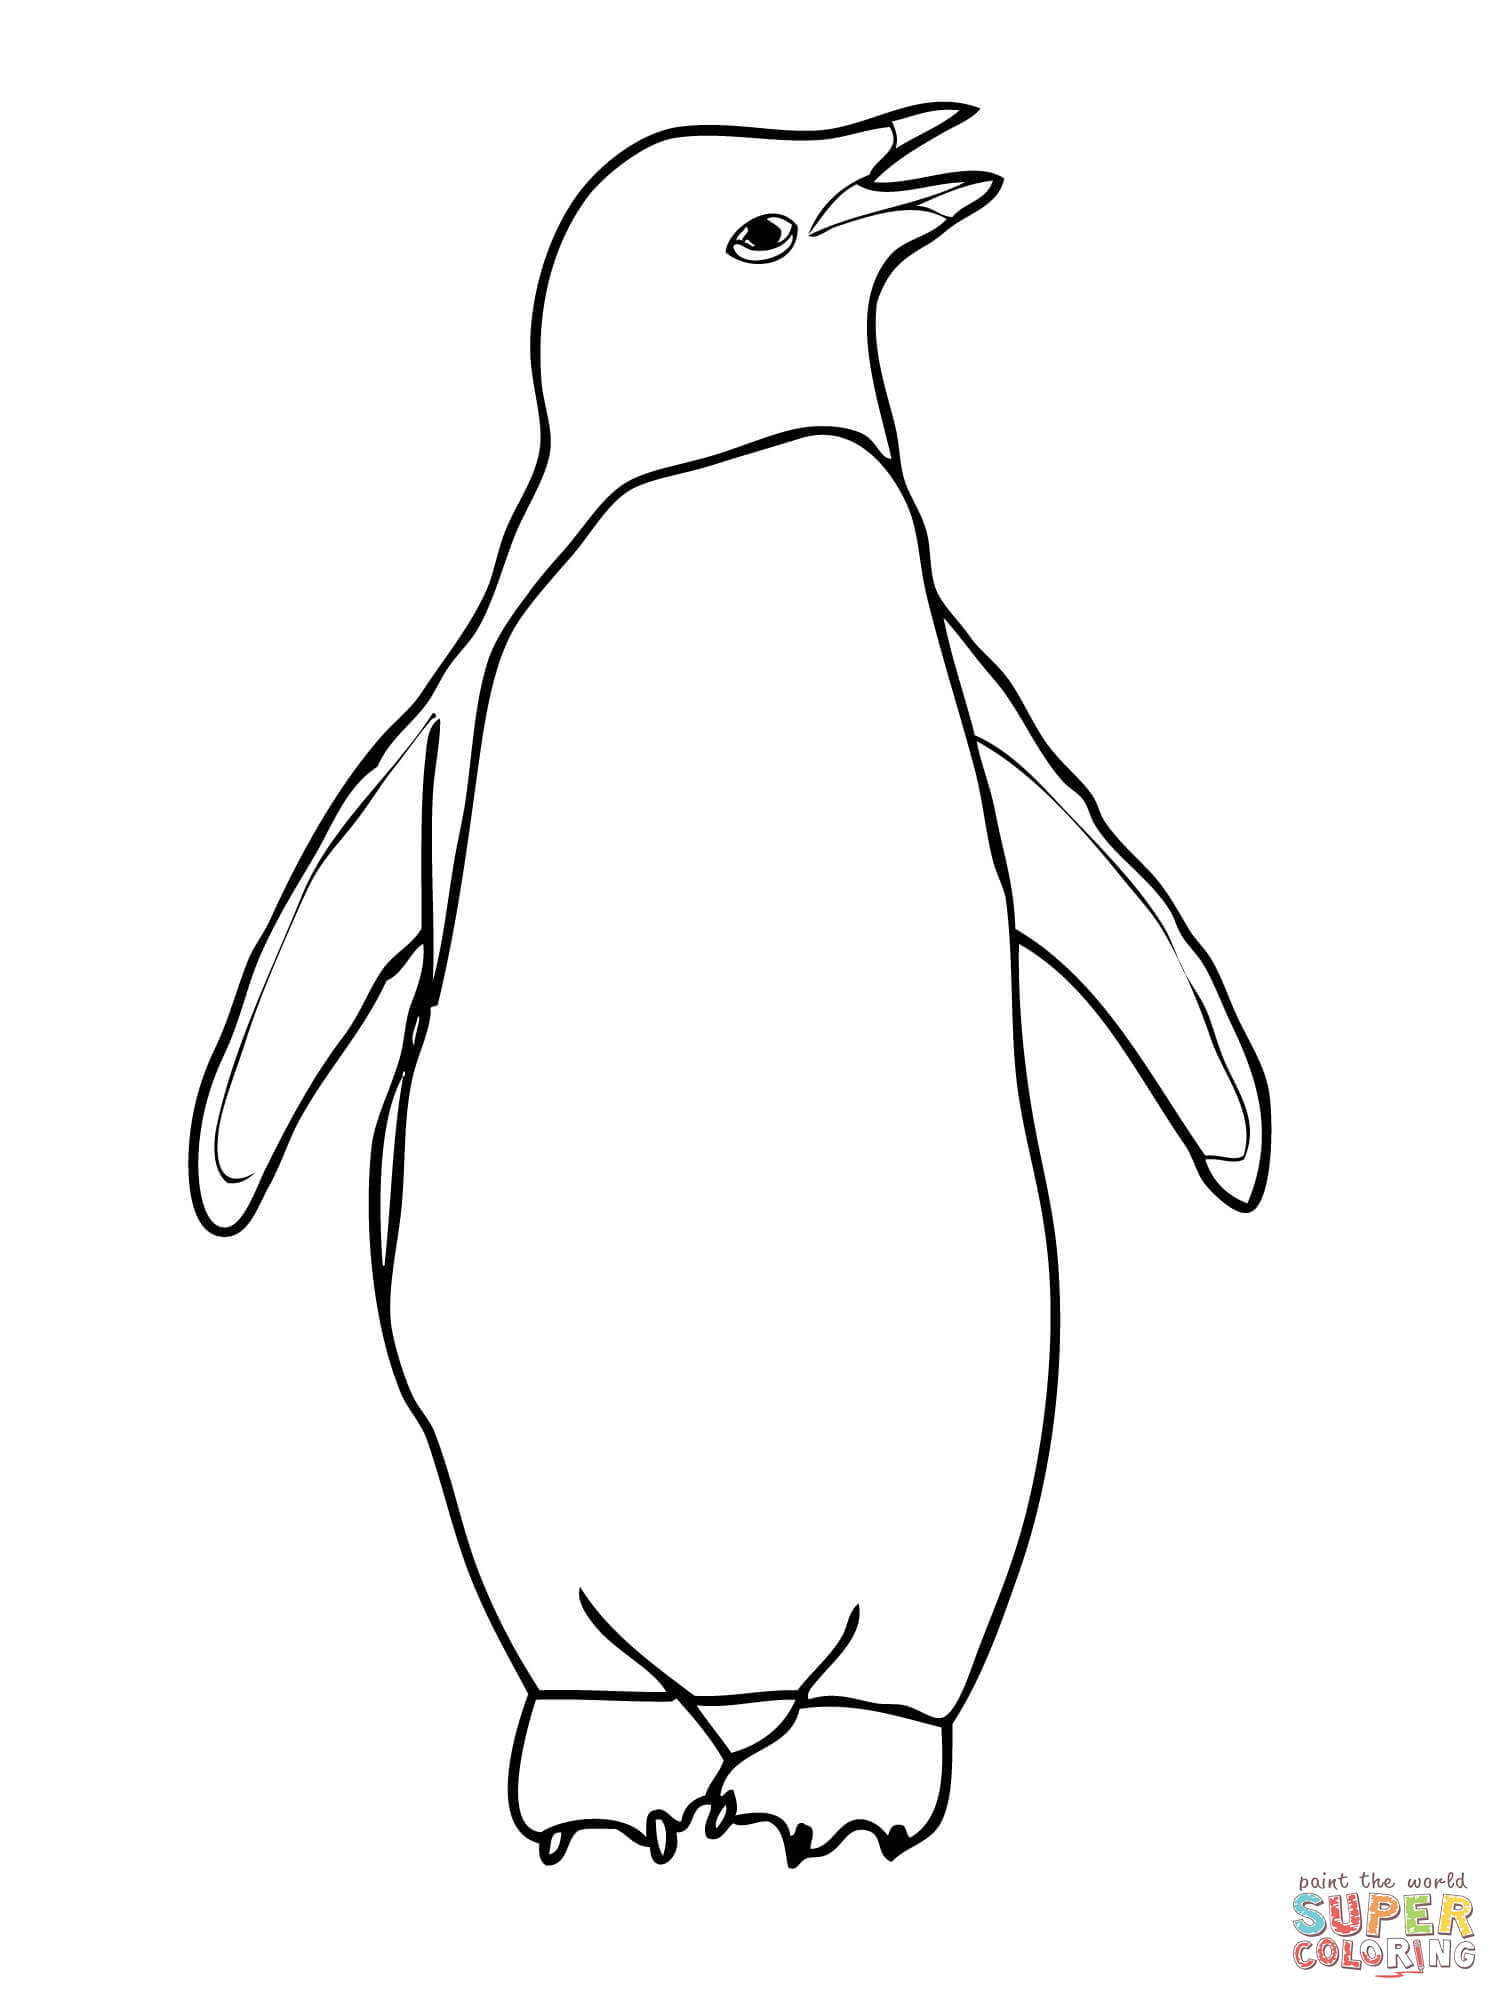 African Penguin Drawing At Getdrawings Com Free For Personal Use